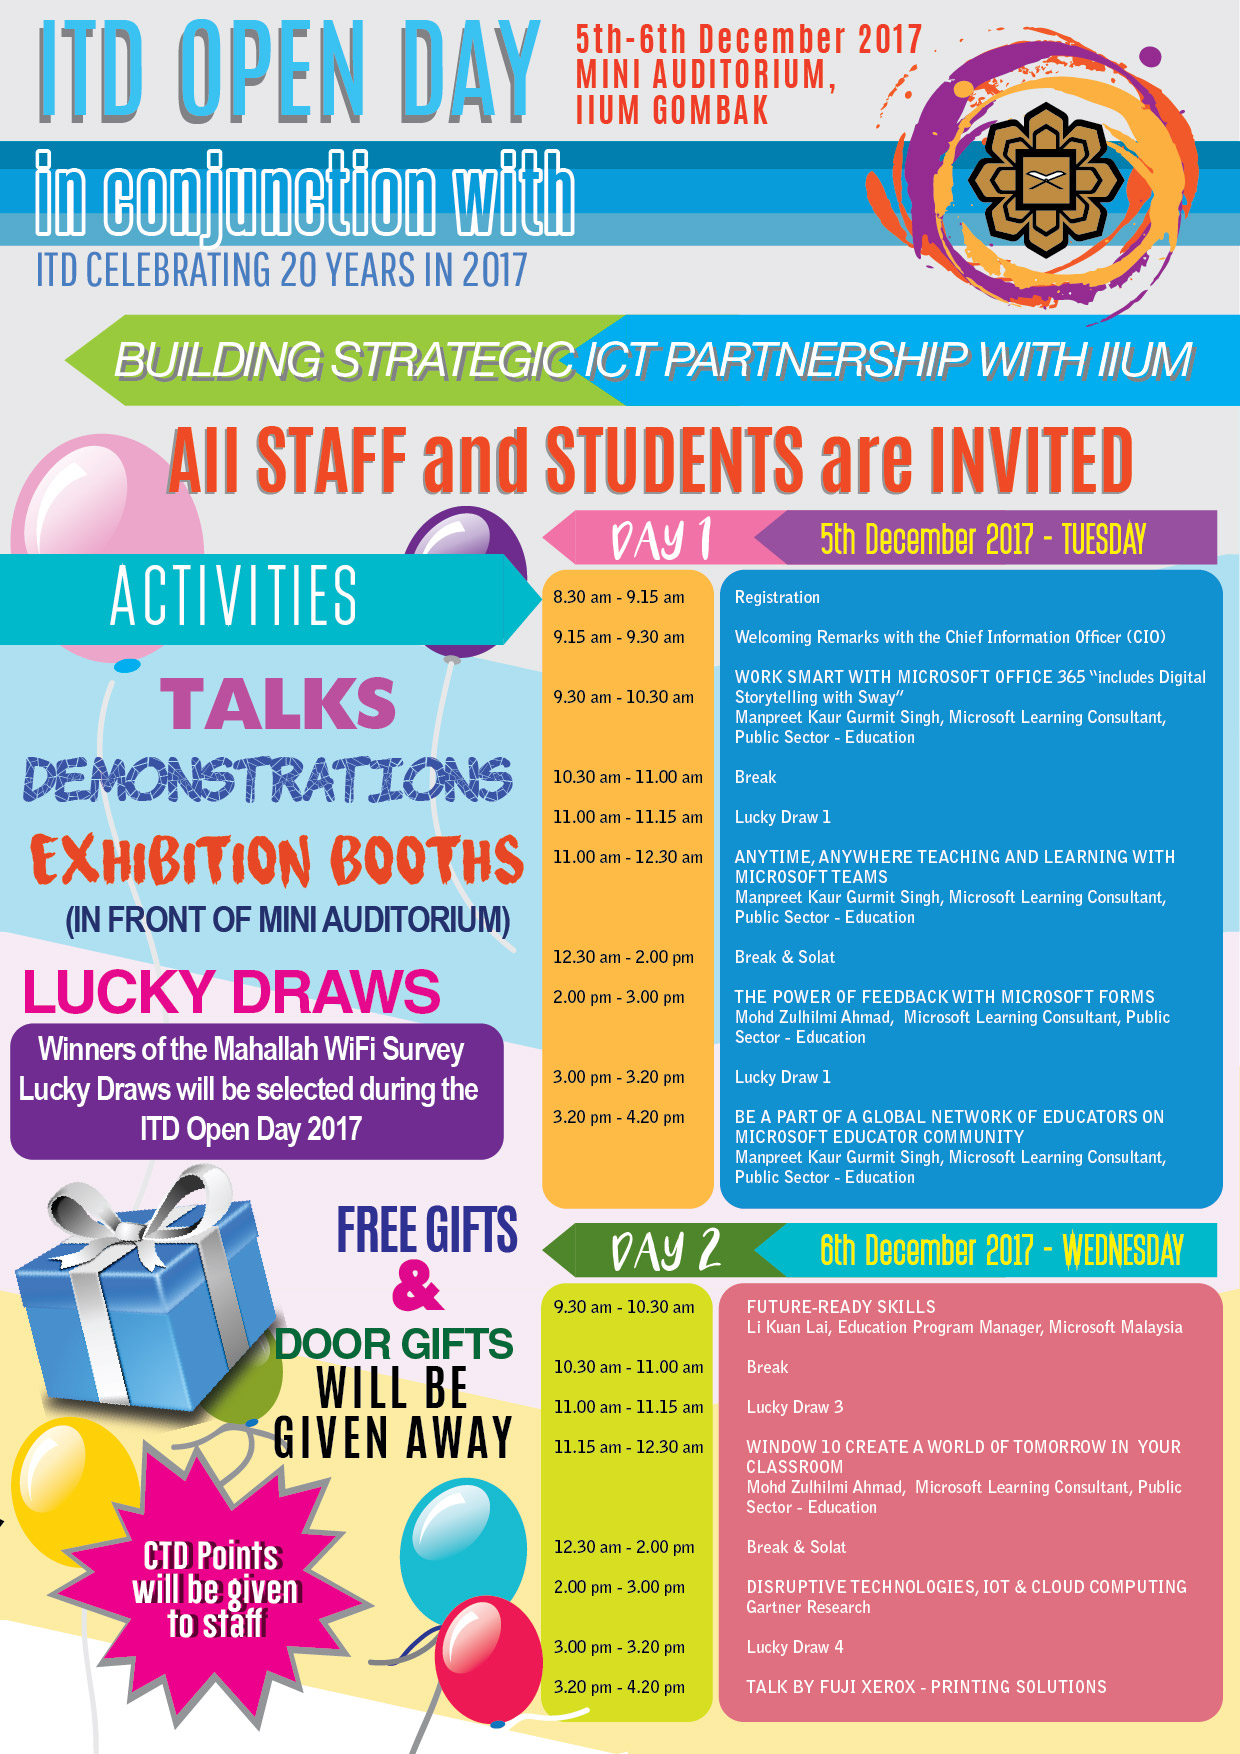 ITD Open Day 2017